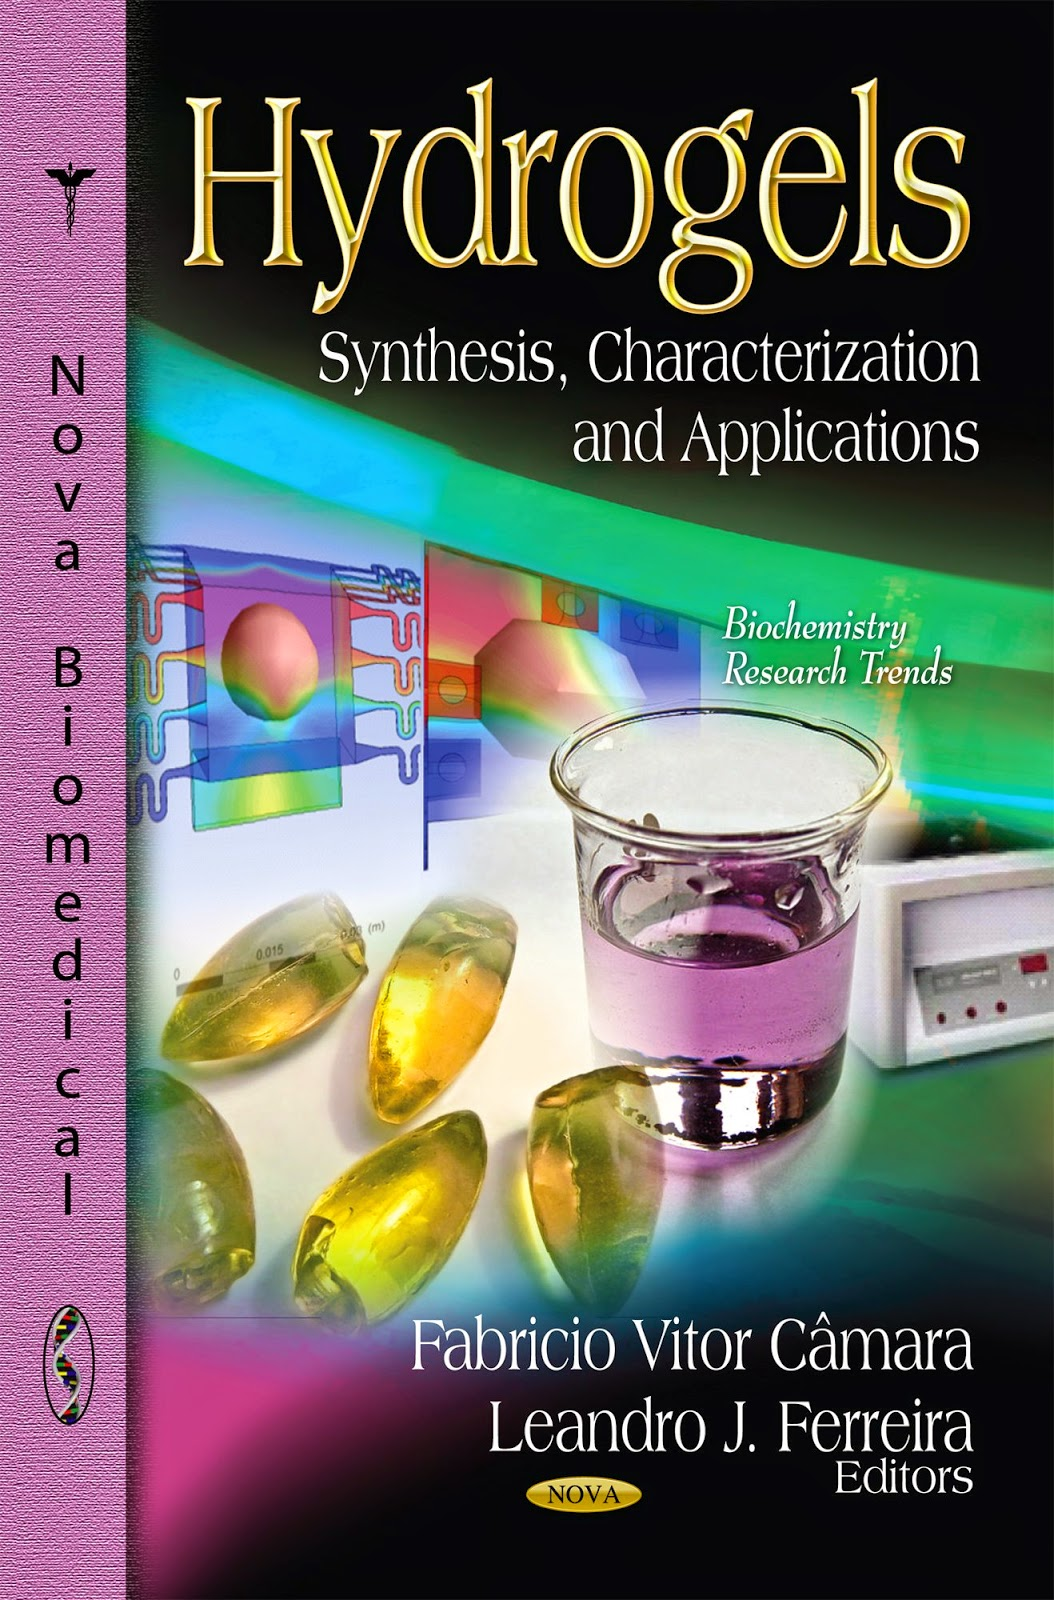 http://kingcheapebook.blogspot.com/2014/08/hydrogels-synthesis-characterization.html